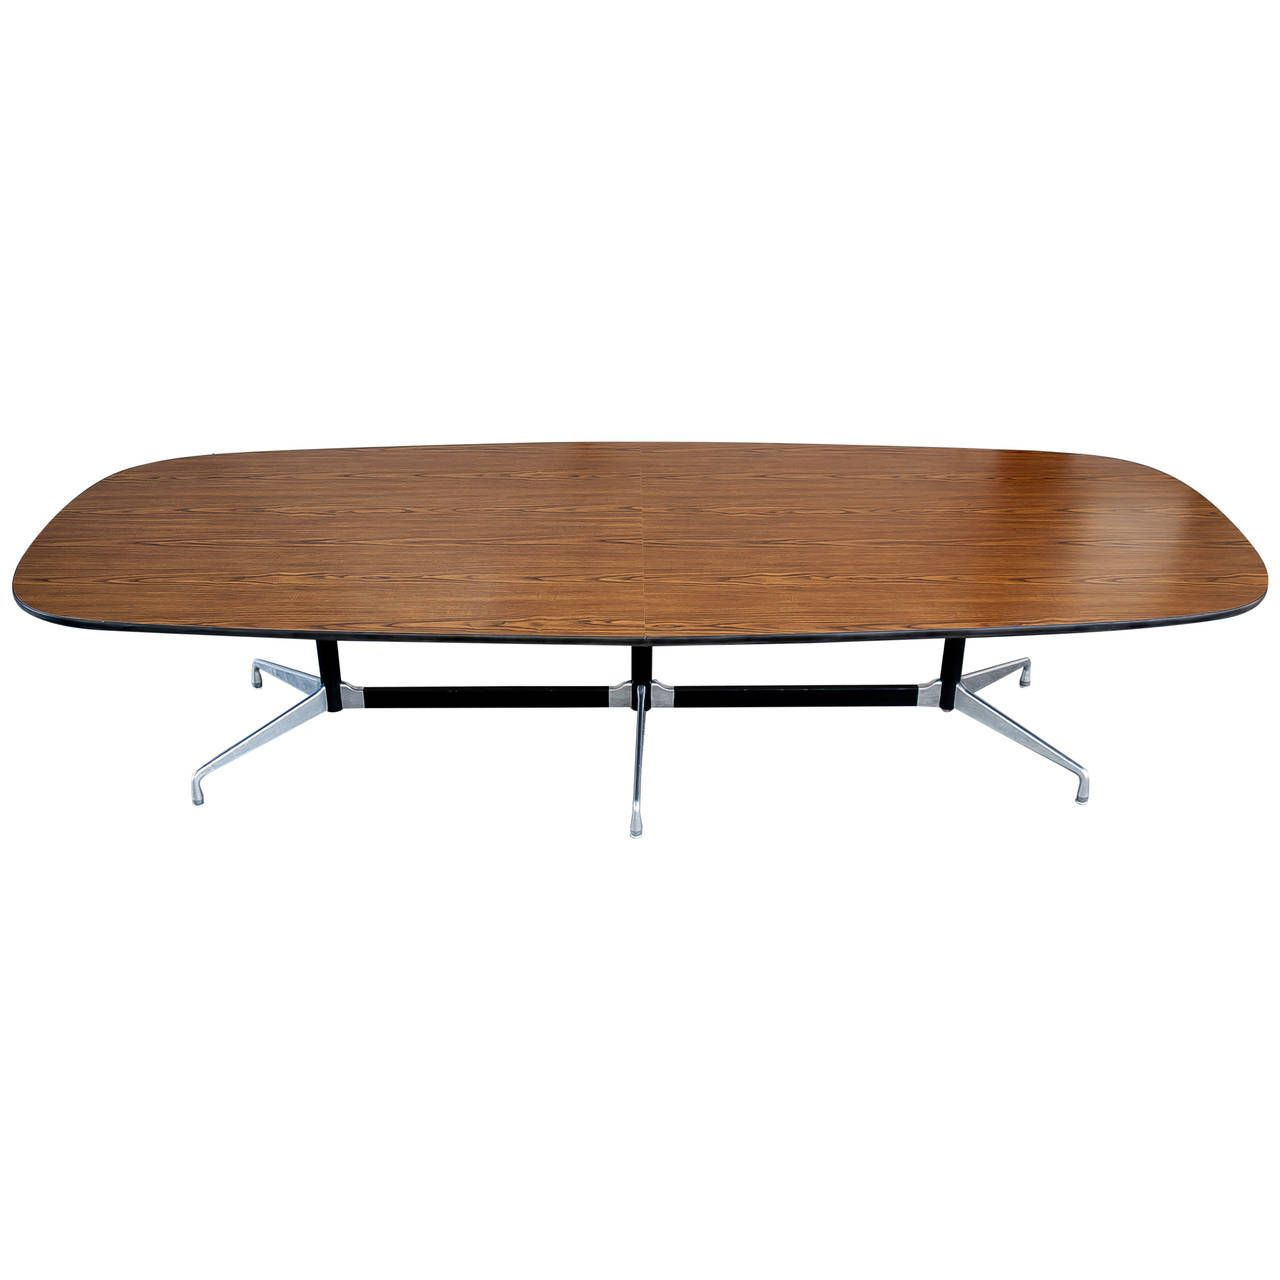 Vintage Eames Conference Table for Herman Miller From a